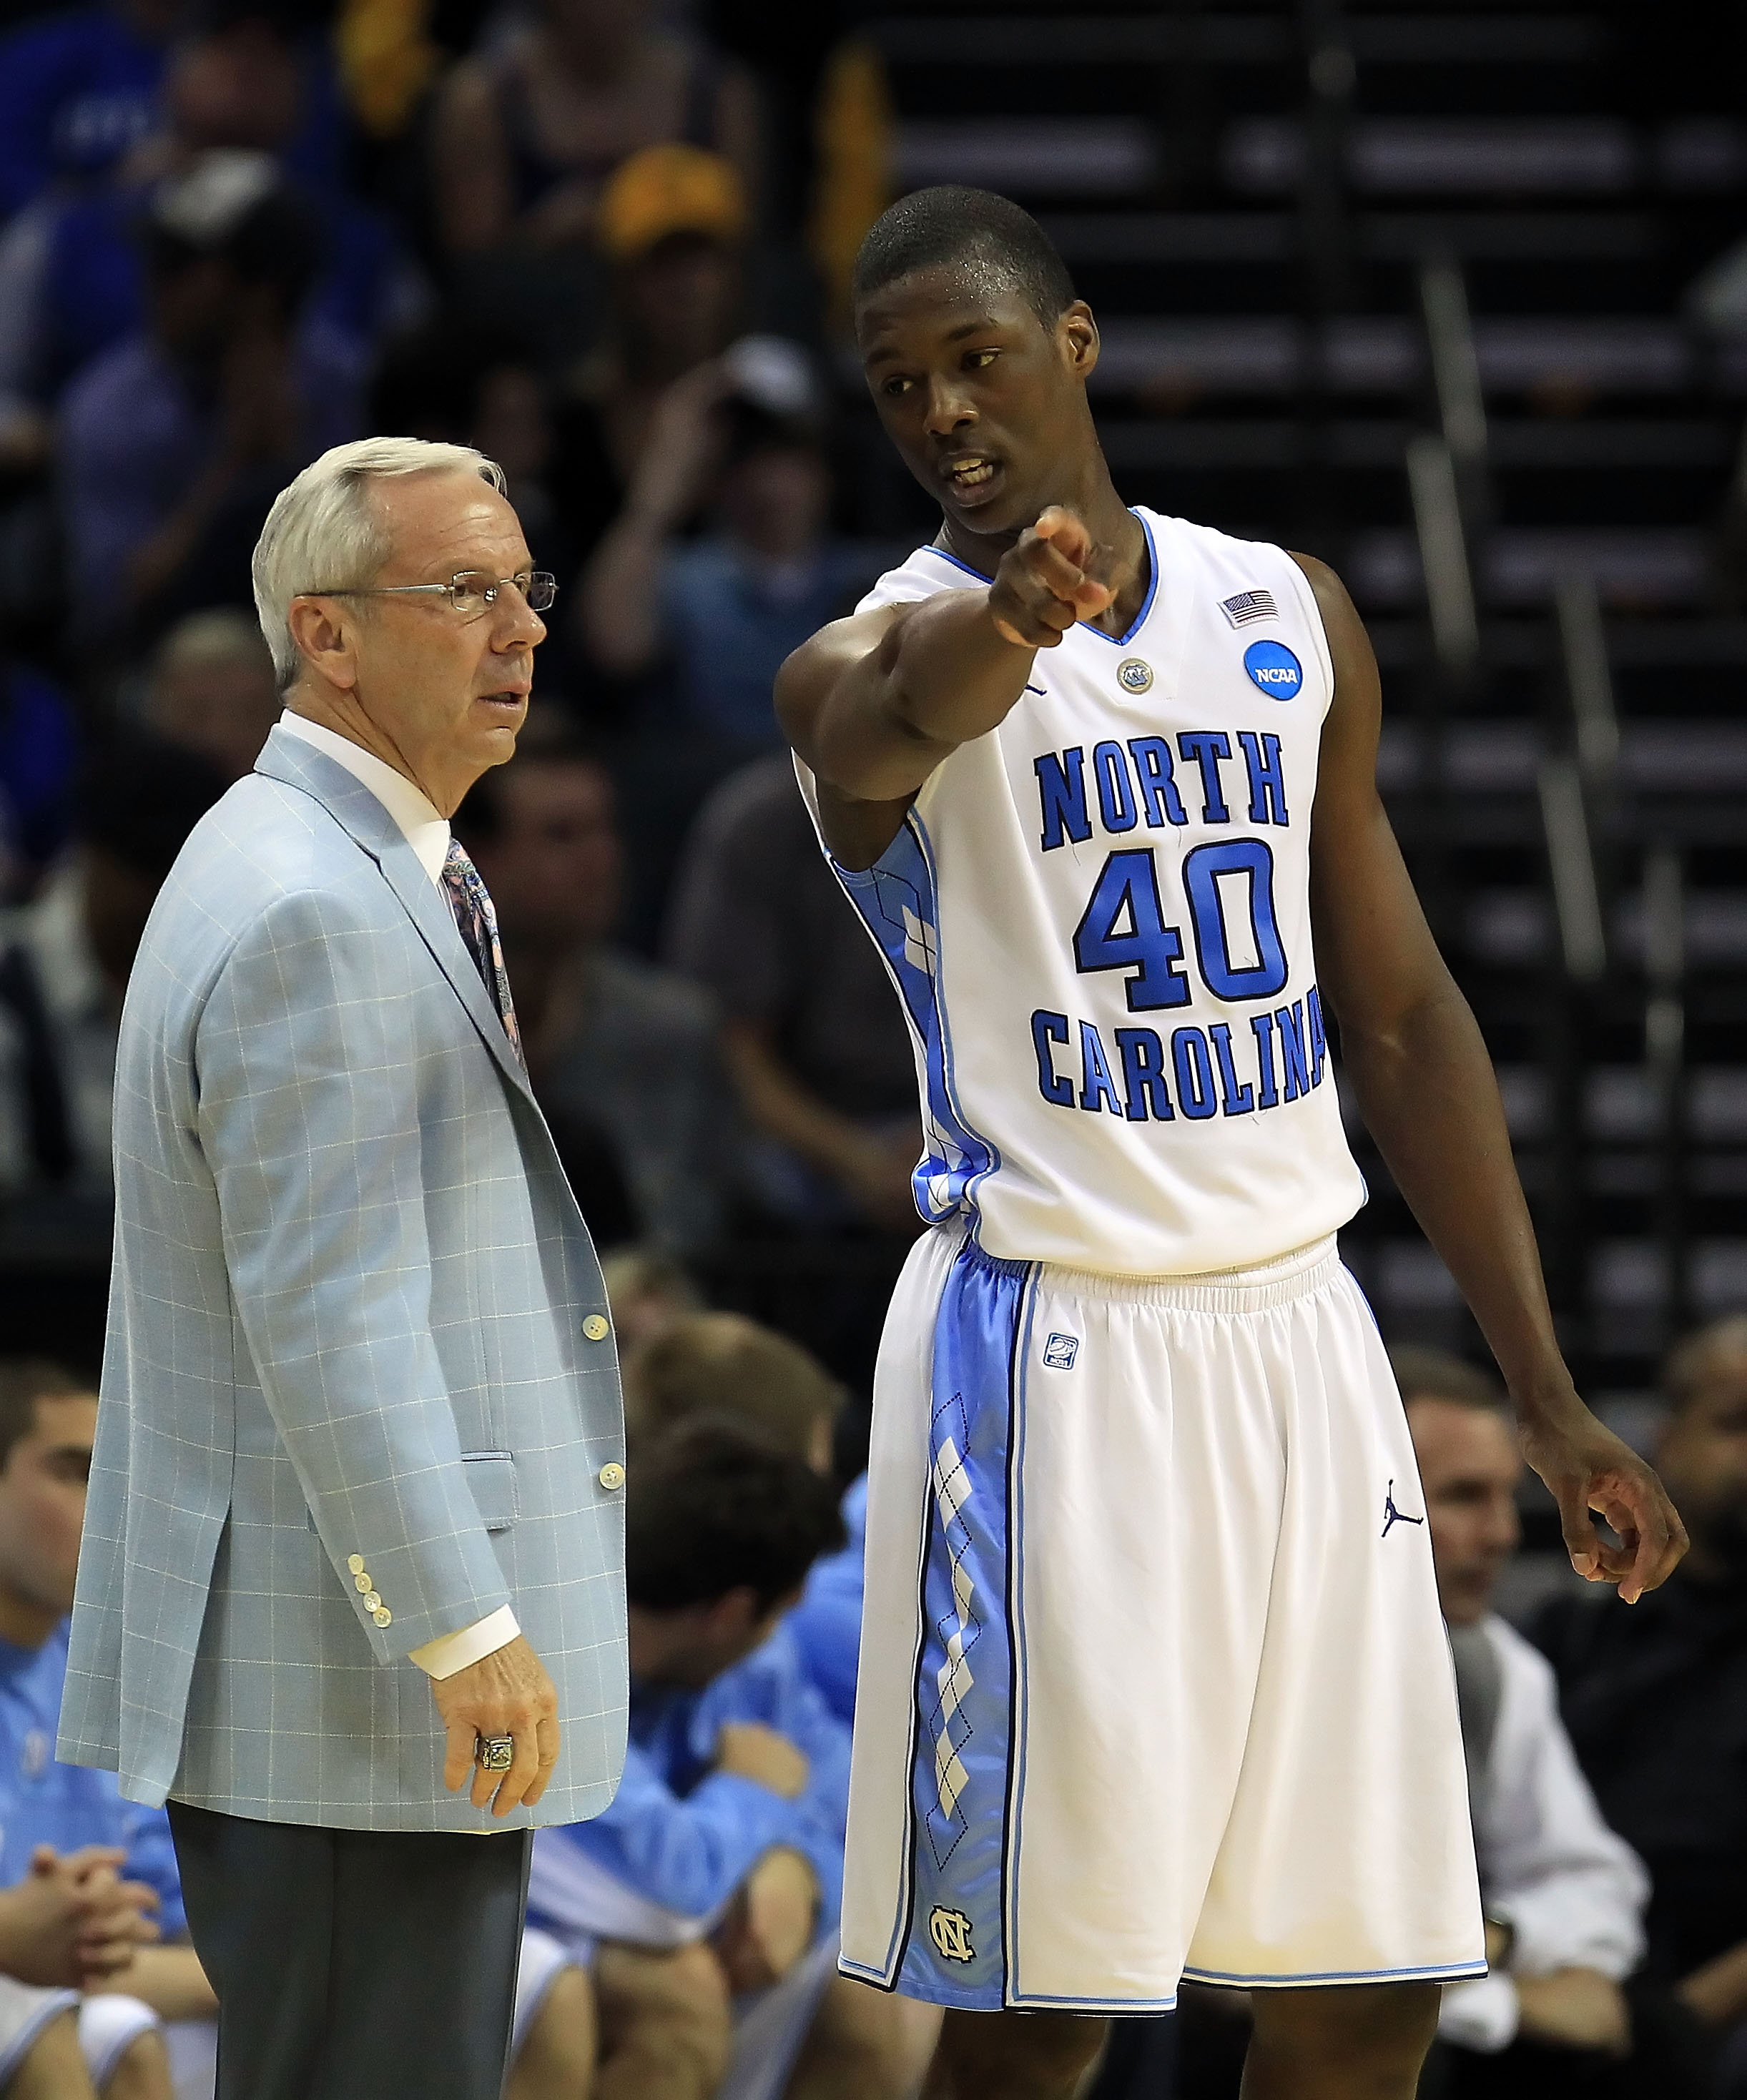 CHARLOTTE, NC - MARCH 20:  Harrison Barnes #40 talks with head coach Roy Williams of the North Carolina Tar Heels while taking on the Washington Huskies during the third round of the 2011 NCAA men's basketball tournament at Time Warner Cable Arena on Marc